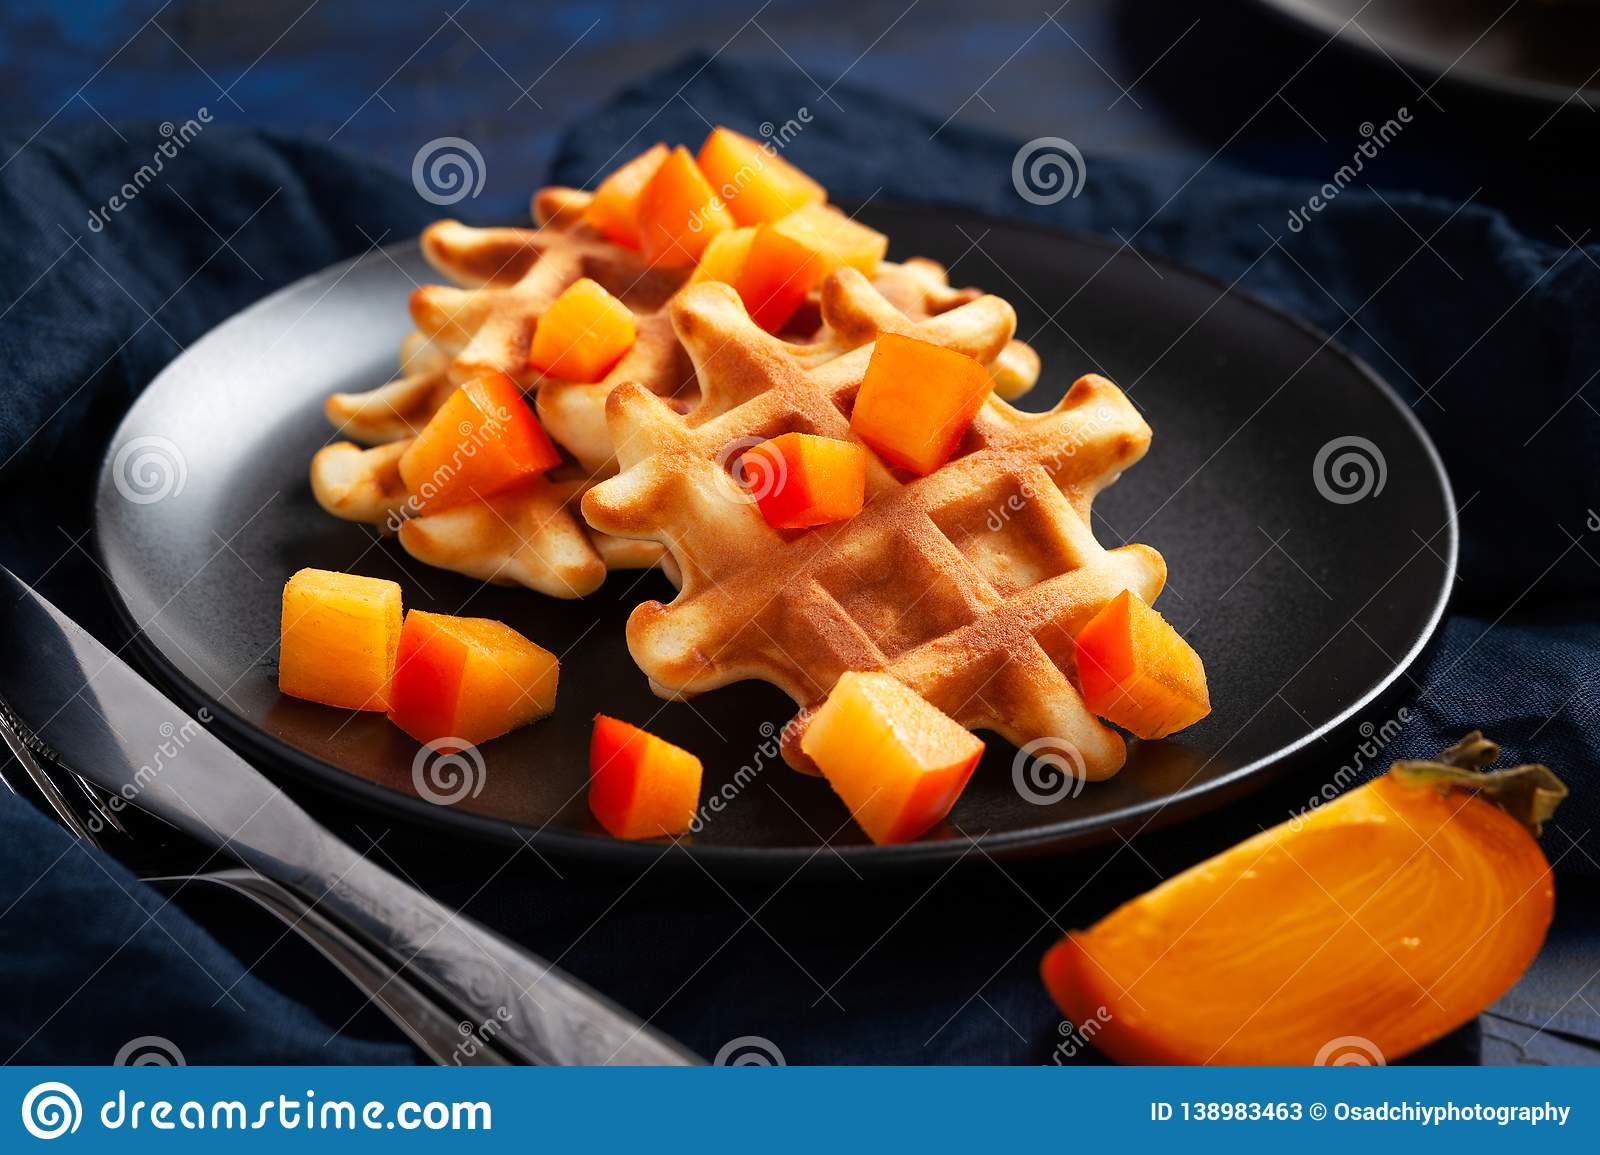 Belgian waffles with persimmon on black plate in dark mood style